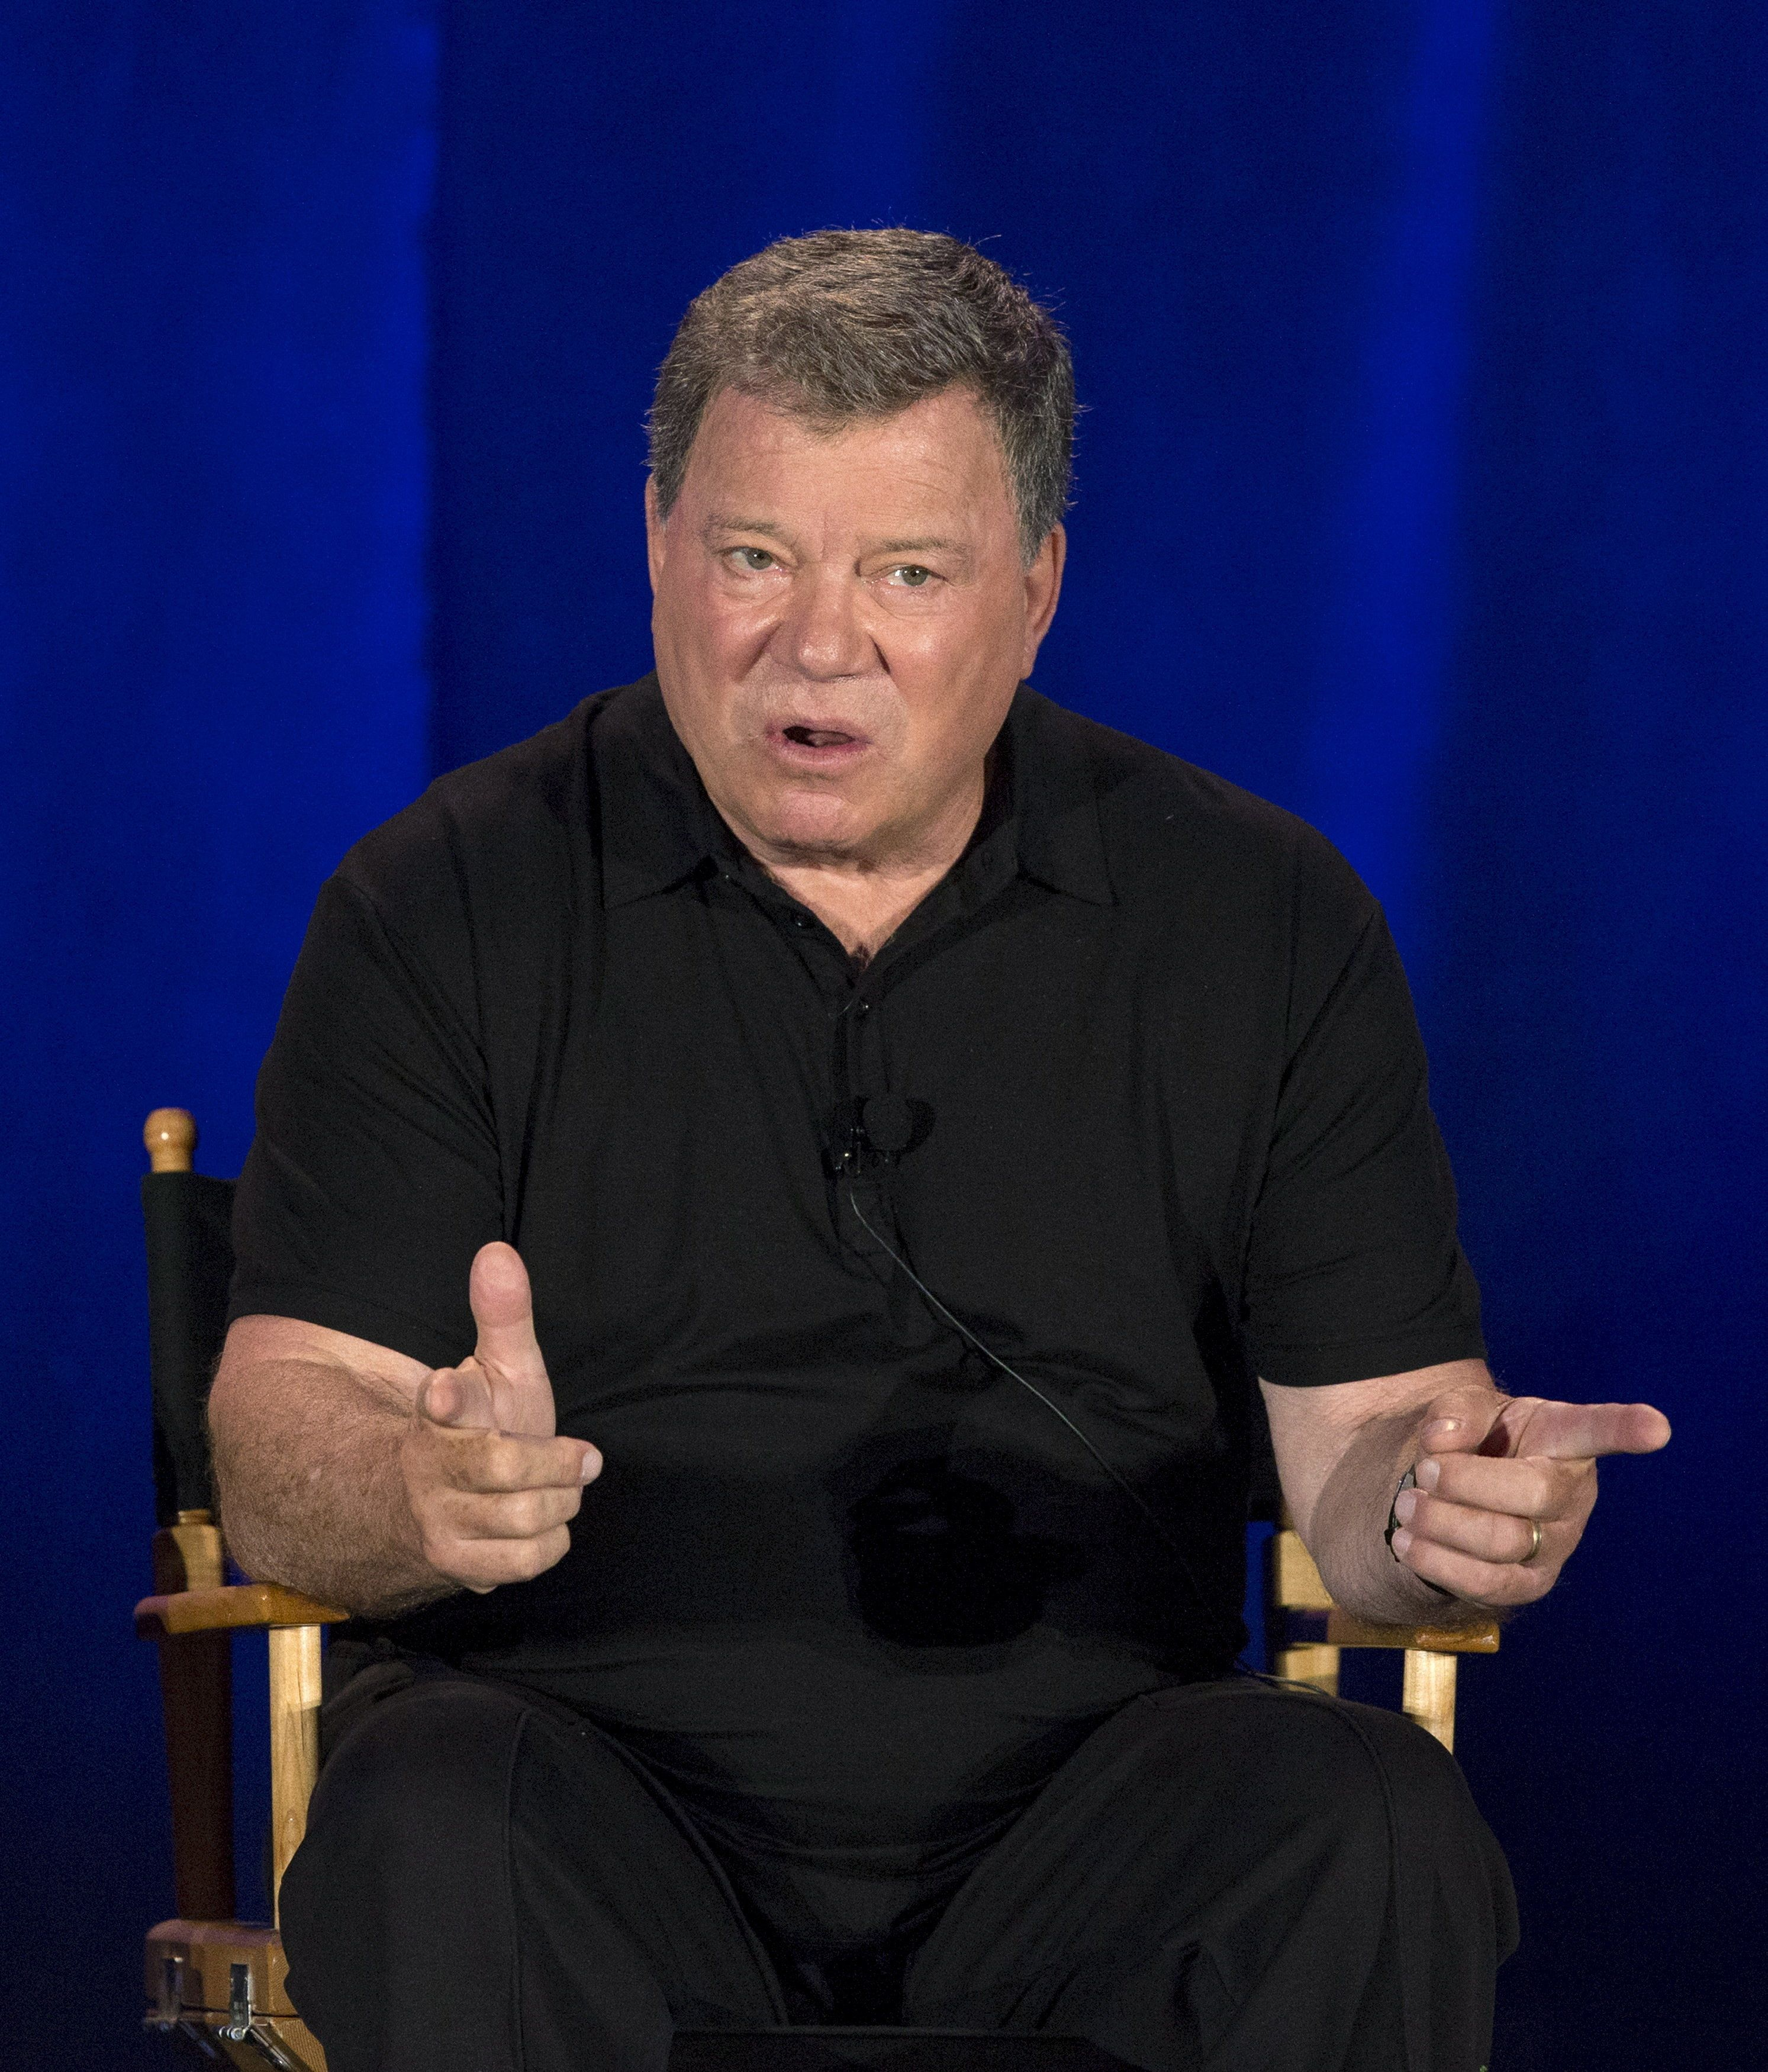 """Actor William Shatner speaks at a panel for the television series """"Clangers"""" during an NBC summer press day in Pasadena, California April 2, 2015.   REUTERS/Mario Anzuoni"""